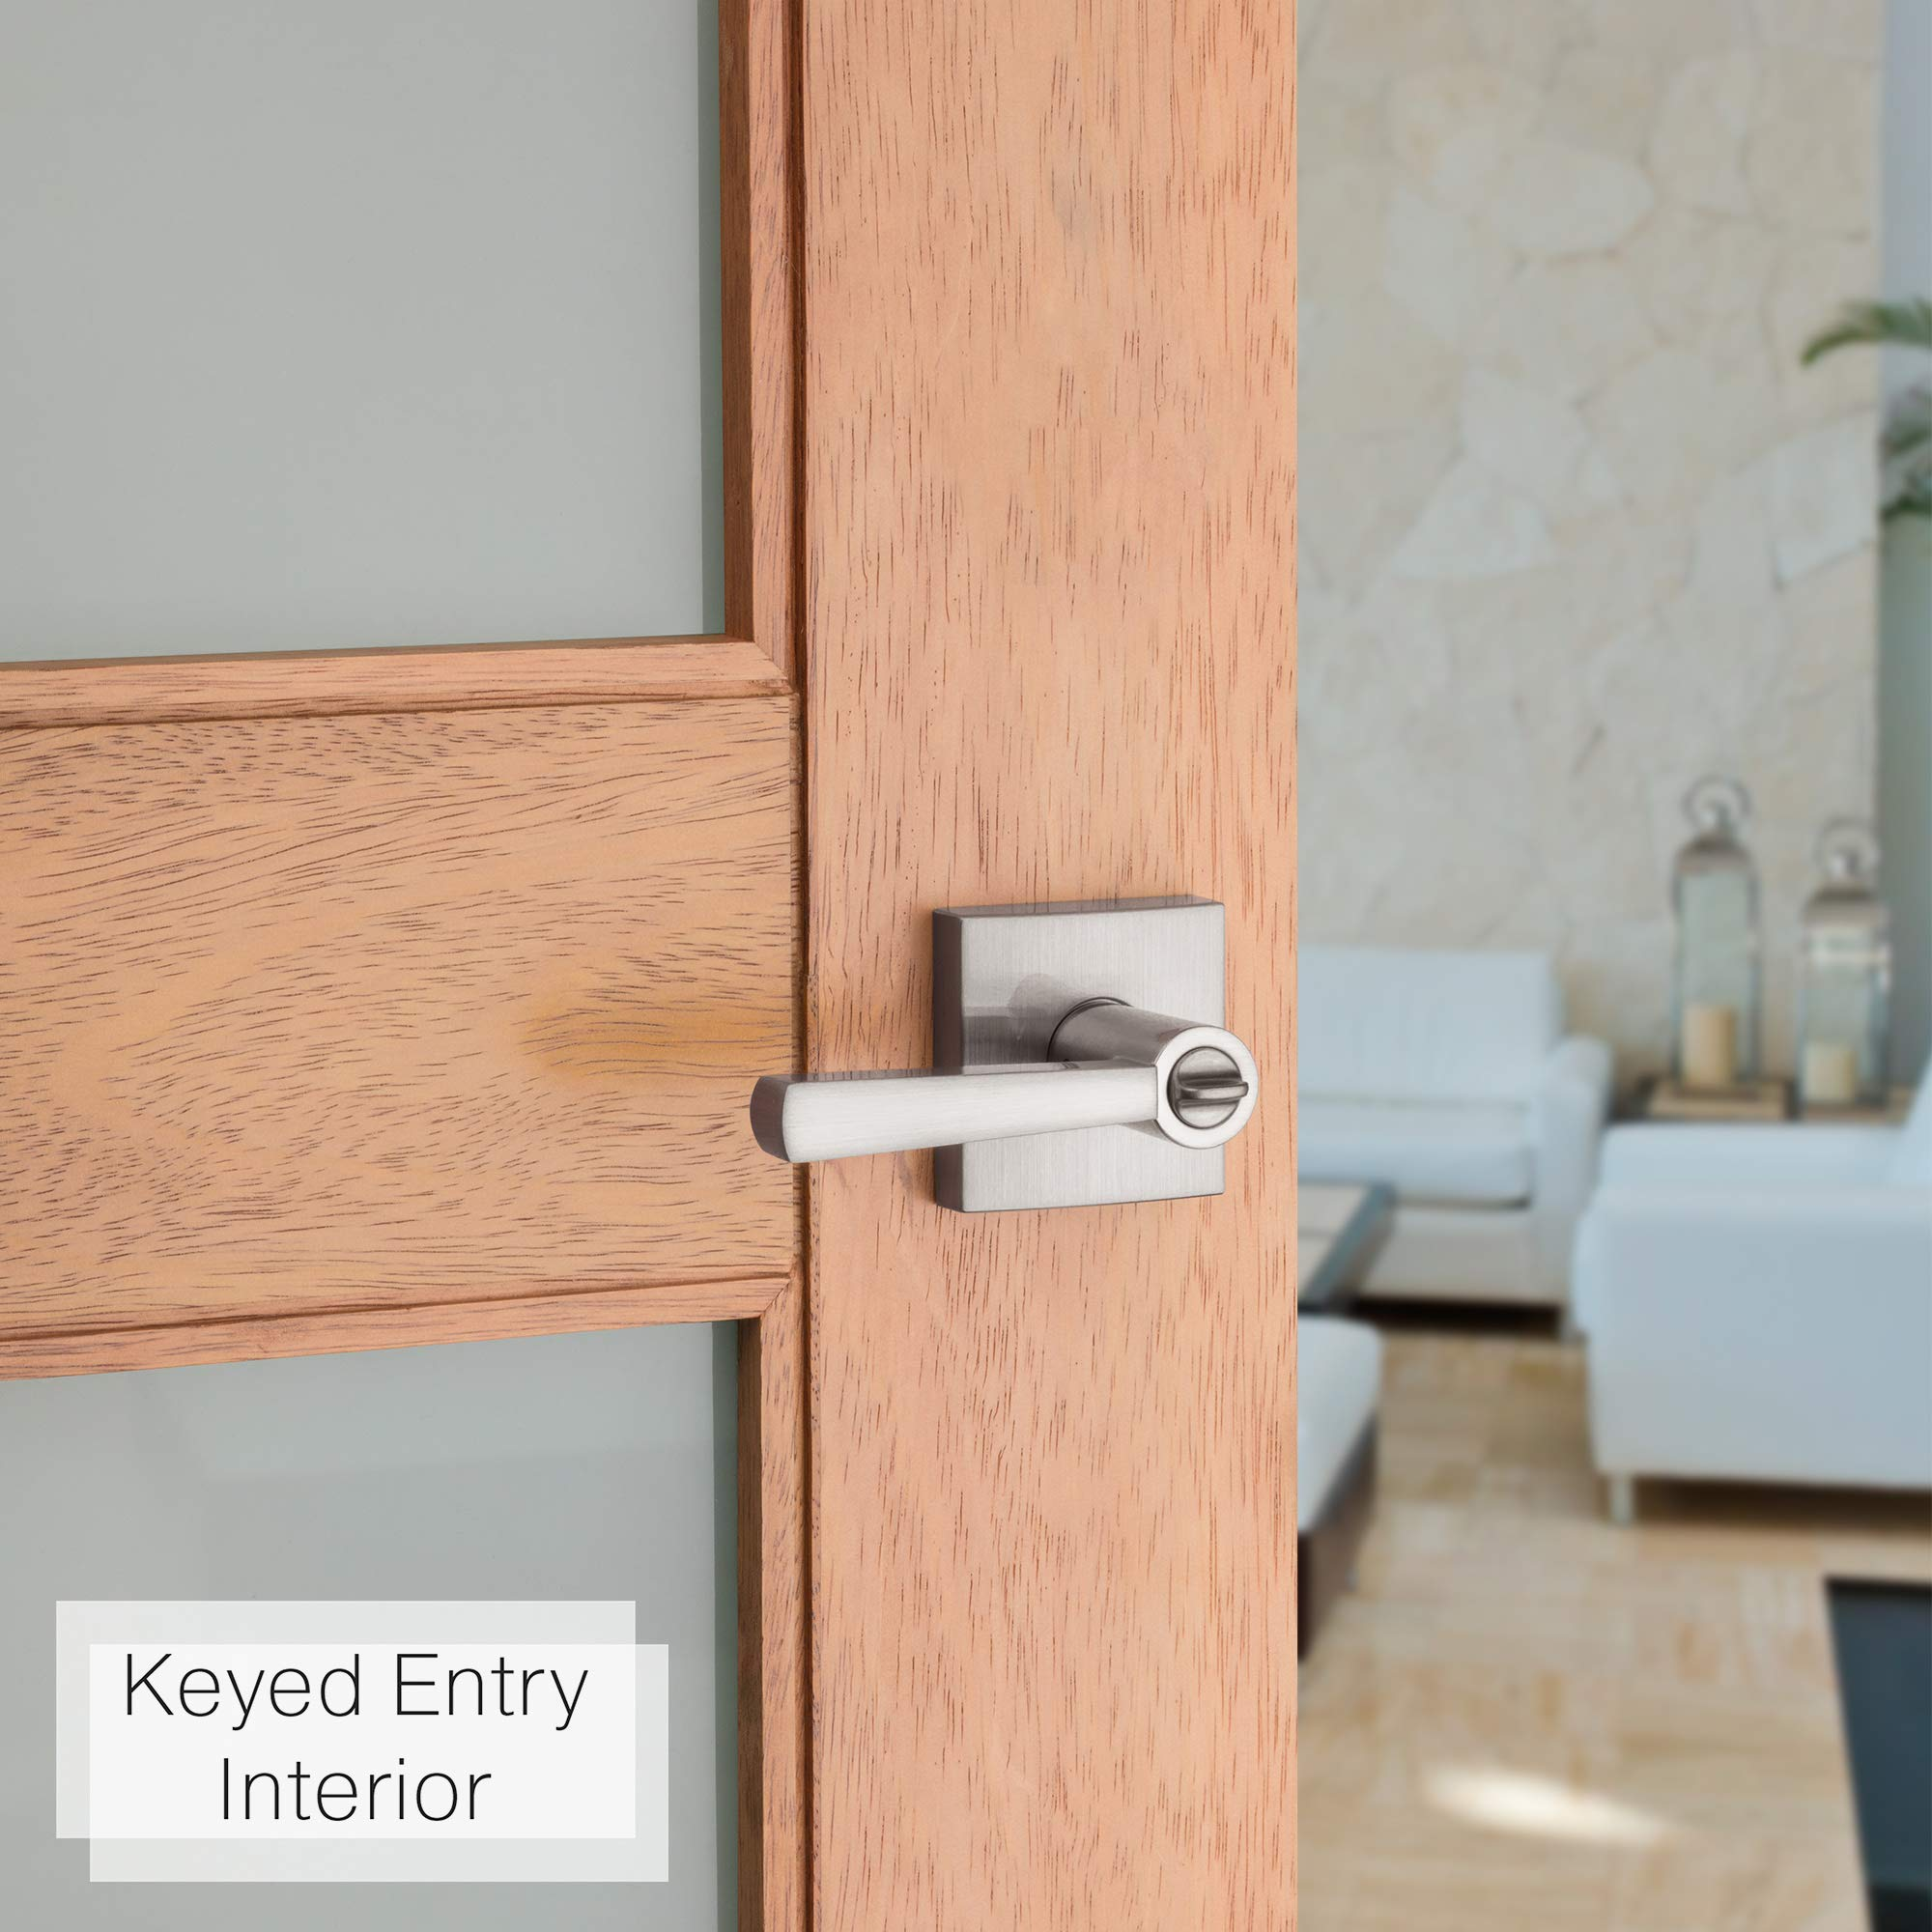 Baldwin Prestige Spyglass Entry Lever featuring SmartKey in Satin Nickel by Baldwin (Image #4)